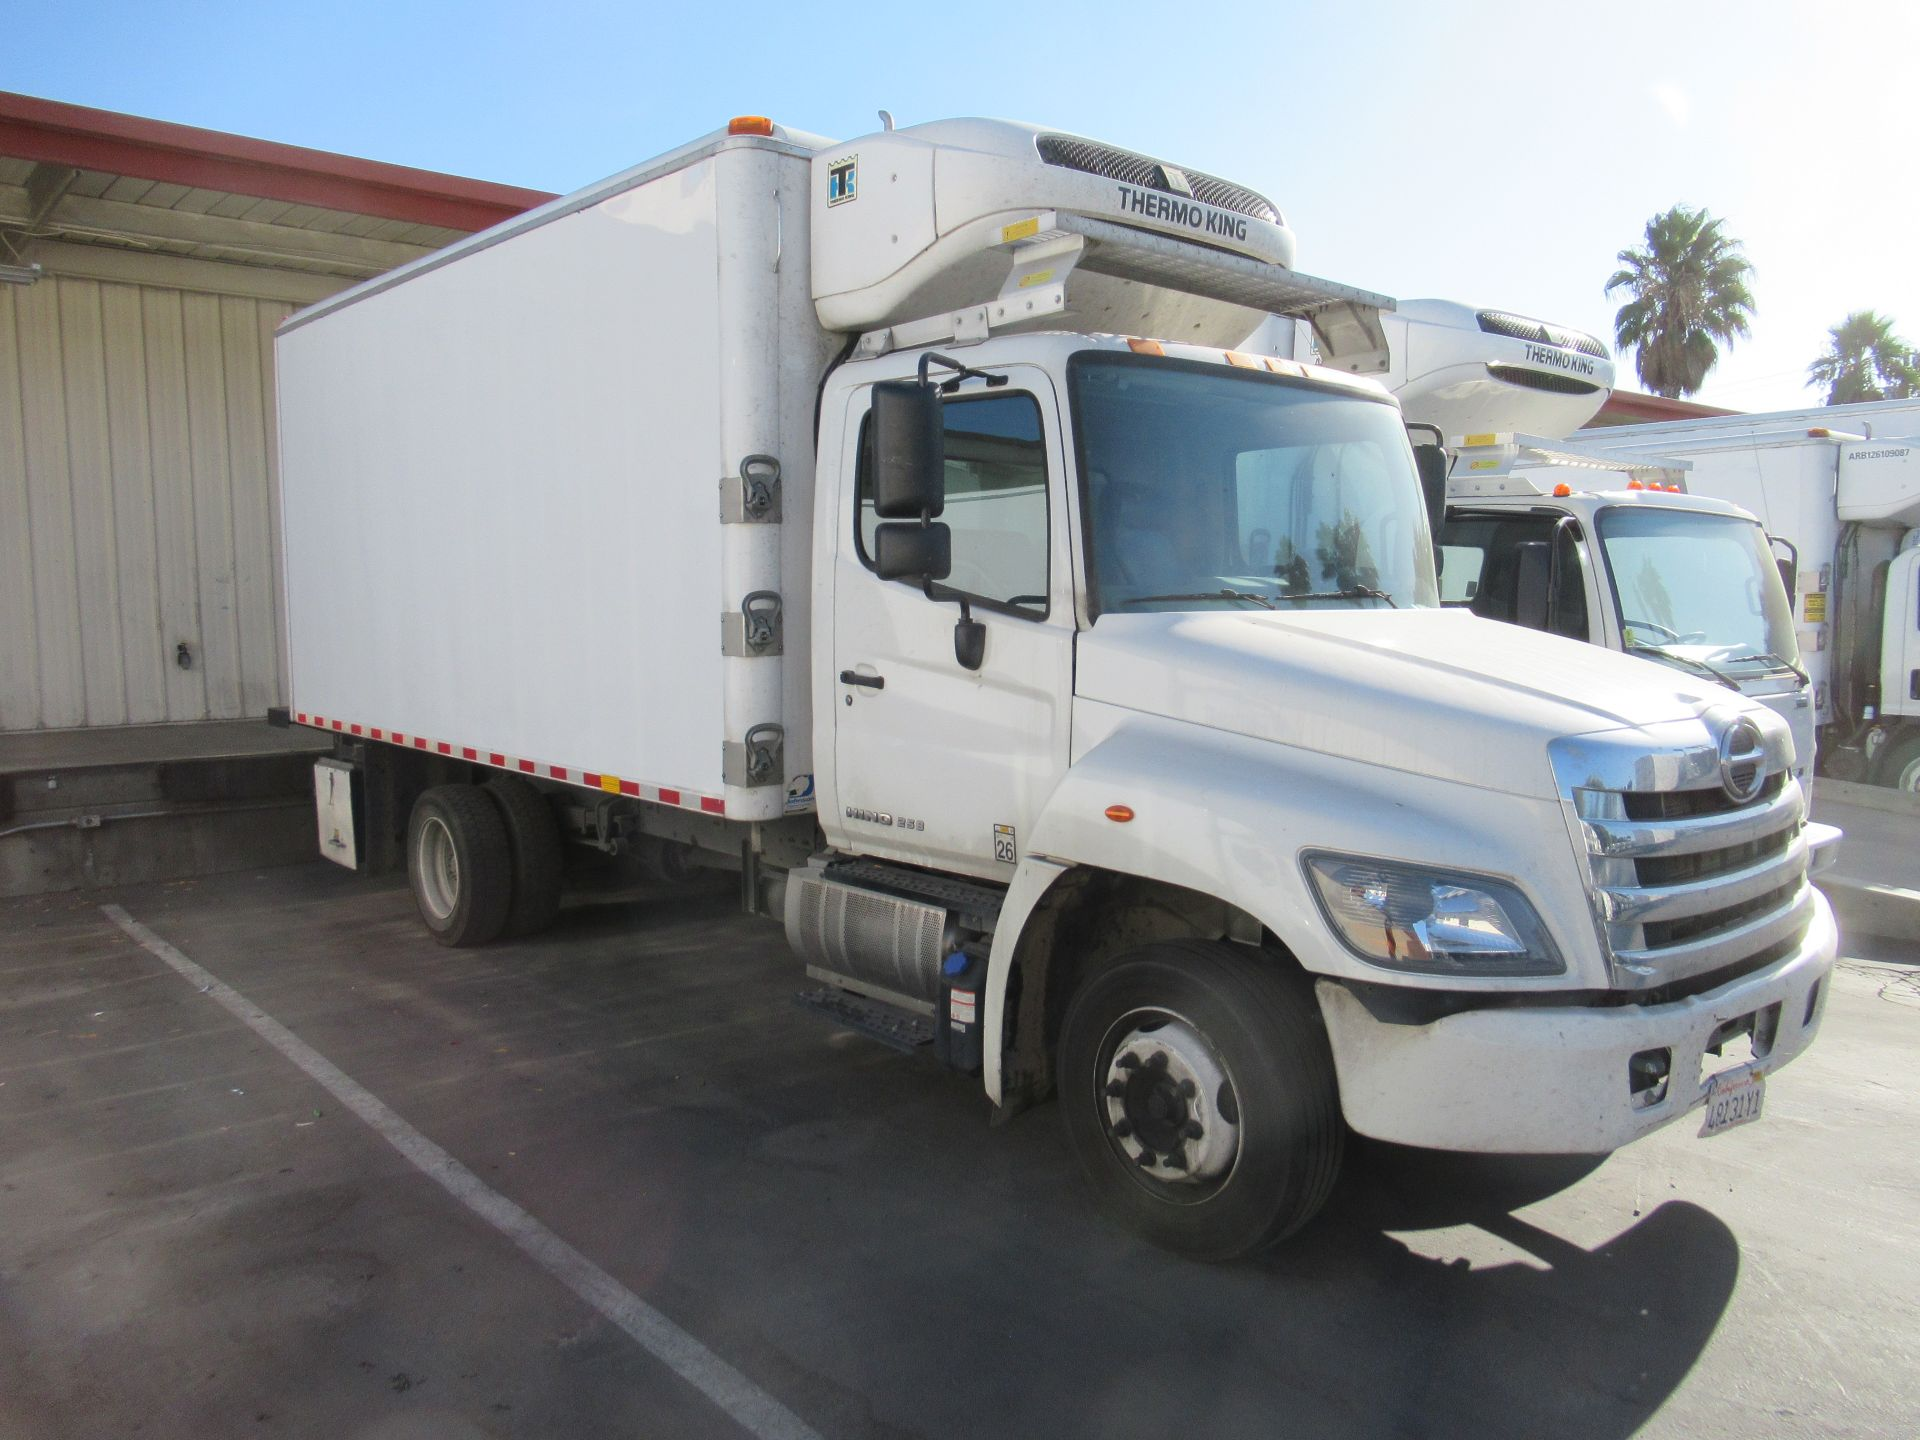 2018 Hino refrigerated truck - Image 2 of 9